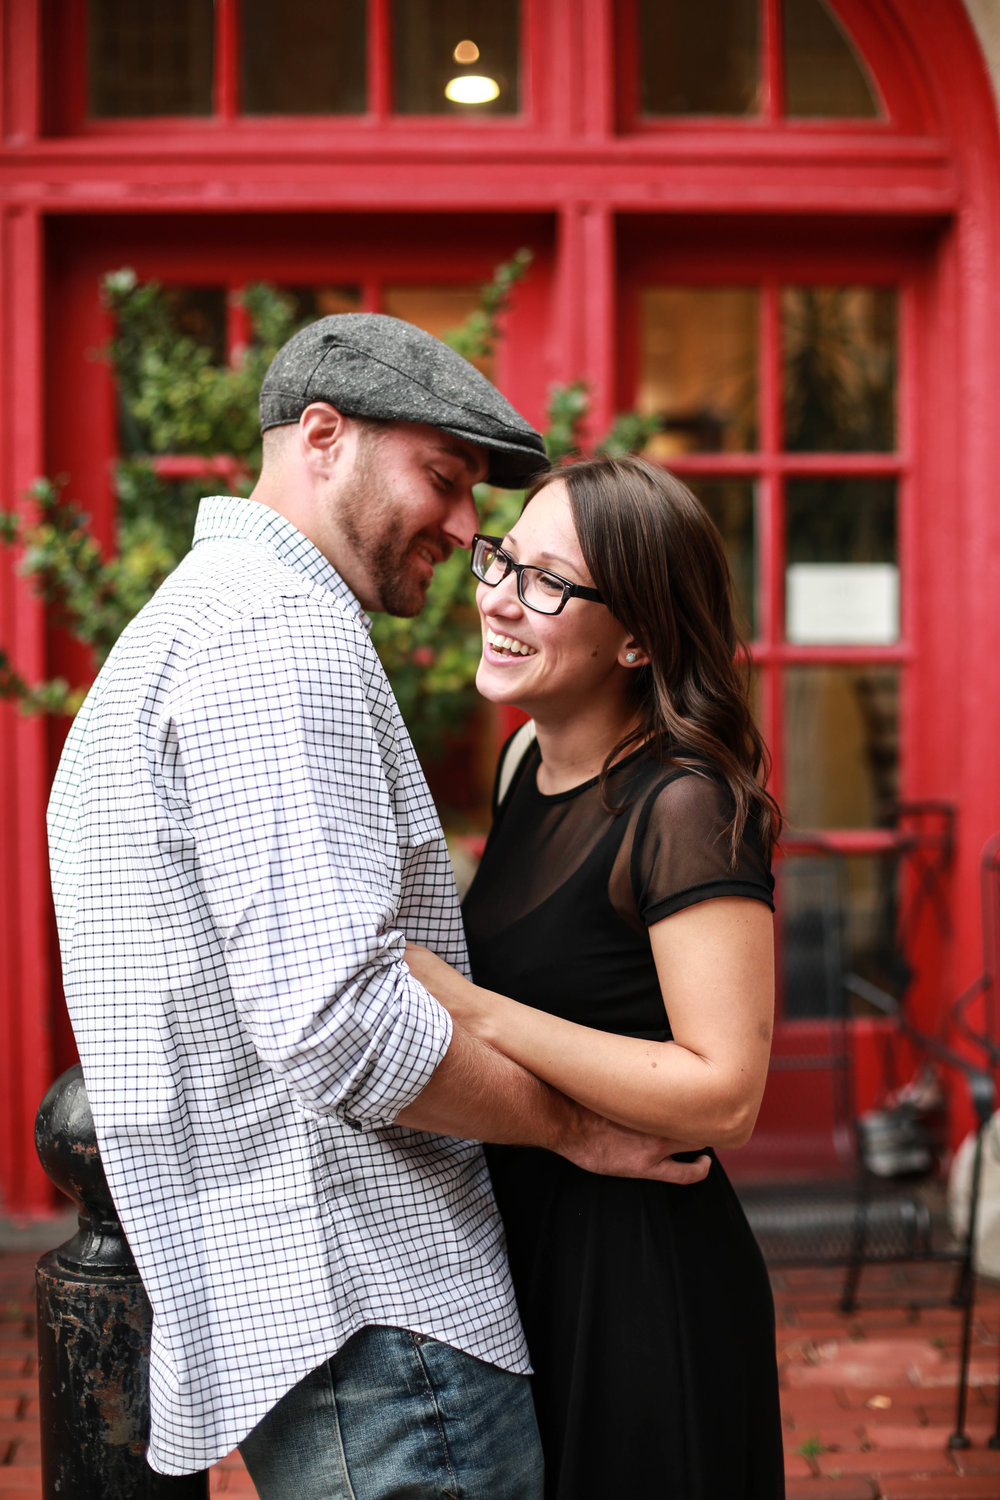 Laughing couple in front of a red building